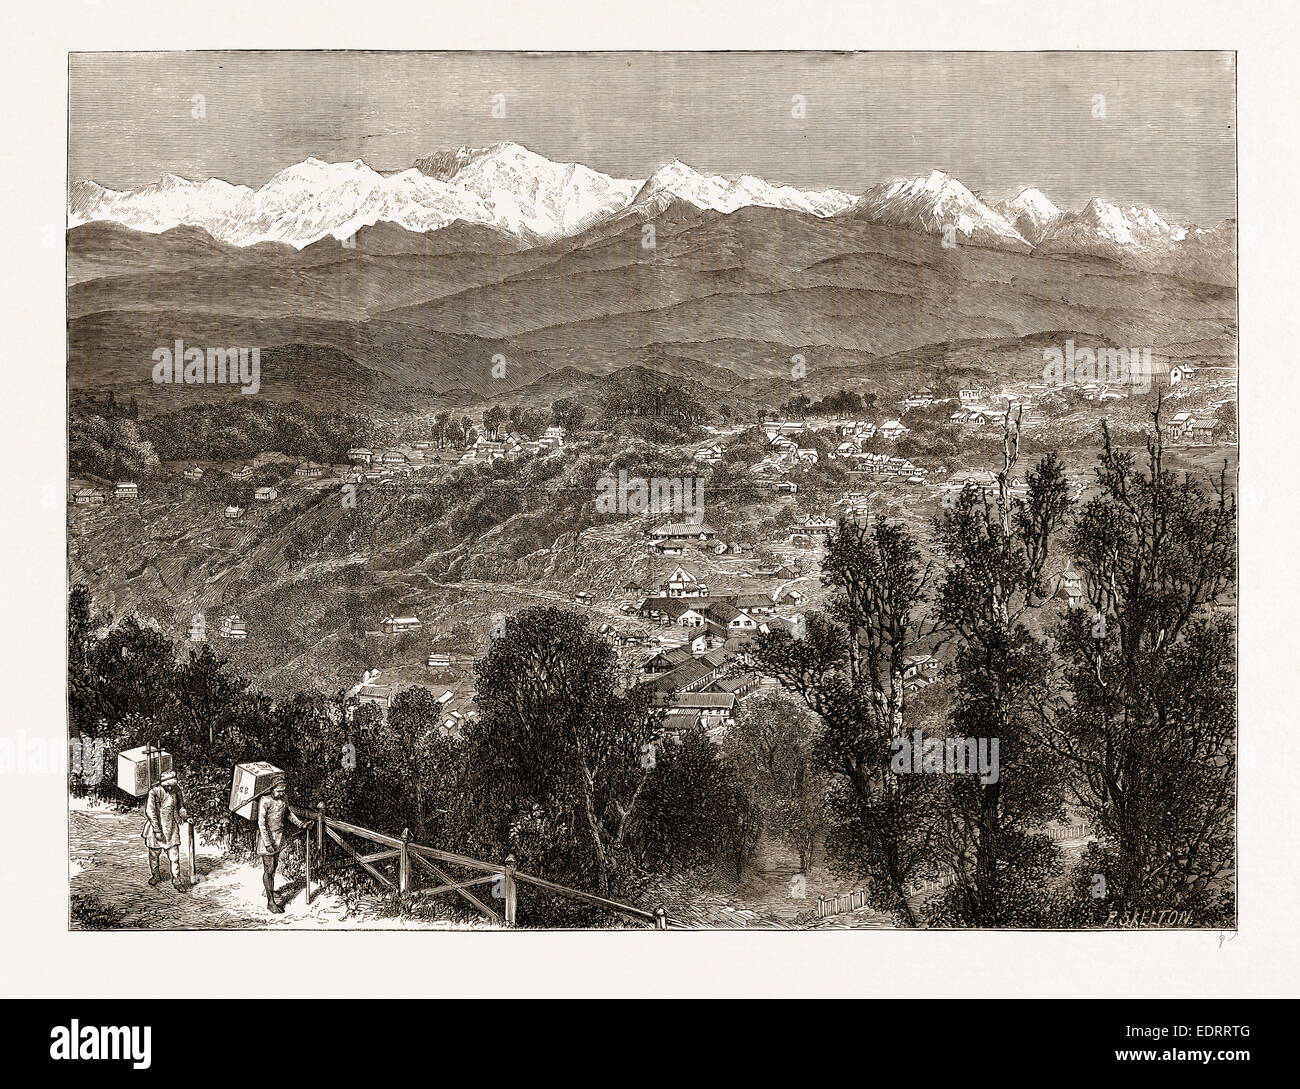 TEA CULTIVATION IN BRITISH INDIA: VIEW OF DARJEELING FROM THE SOUTH, 1876 - Stock Image